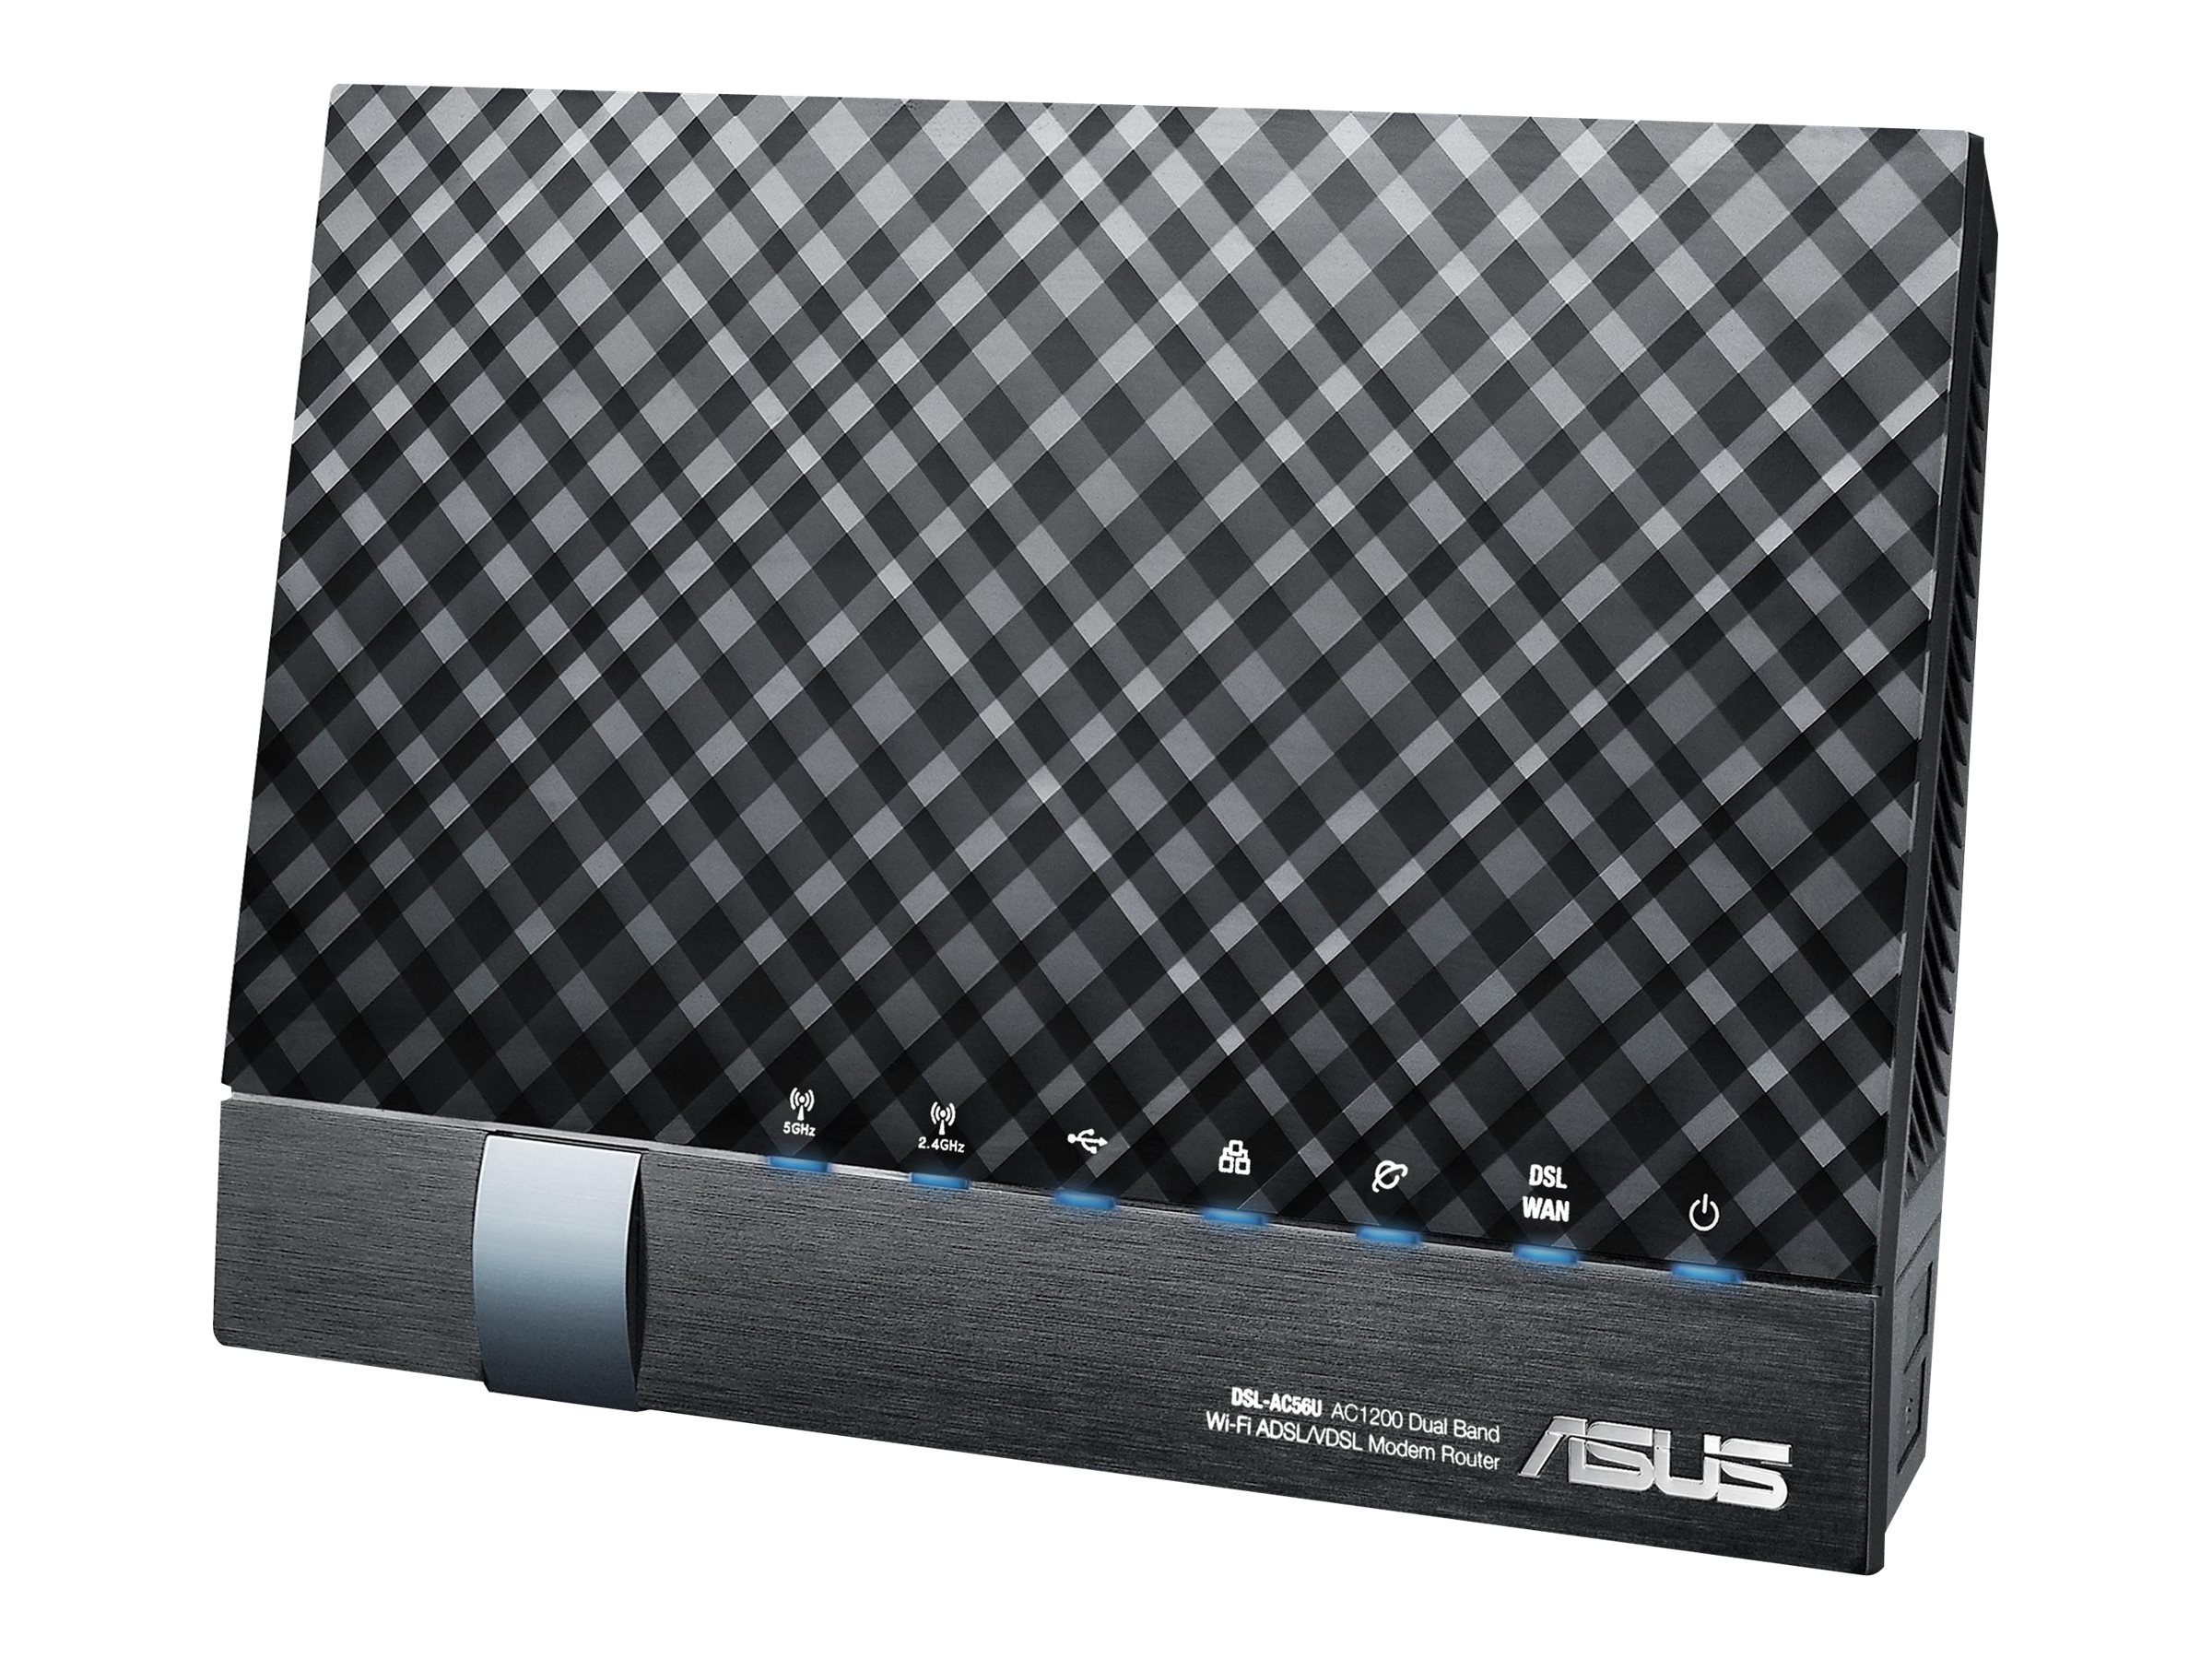 ASUS DSL-AC56U - Wireless Router - DSL-Modem - 4-Port-Switch - GigE - 802.11a/b/g/n/ac